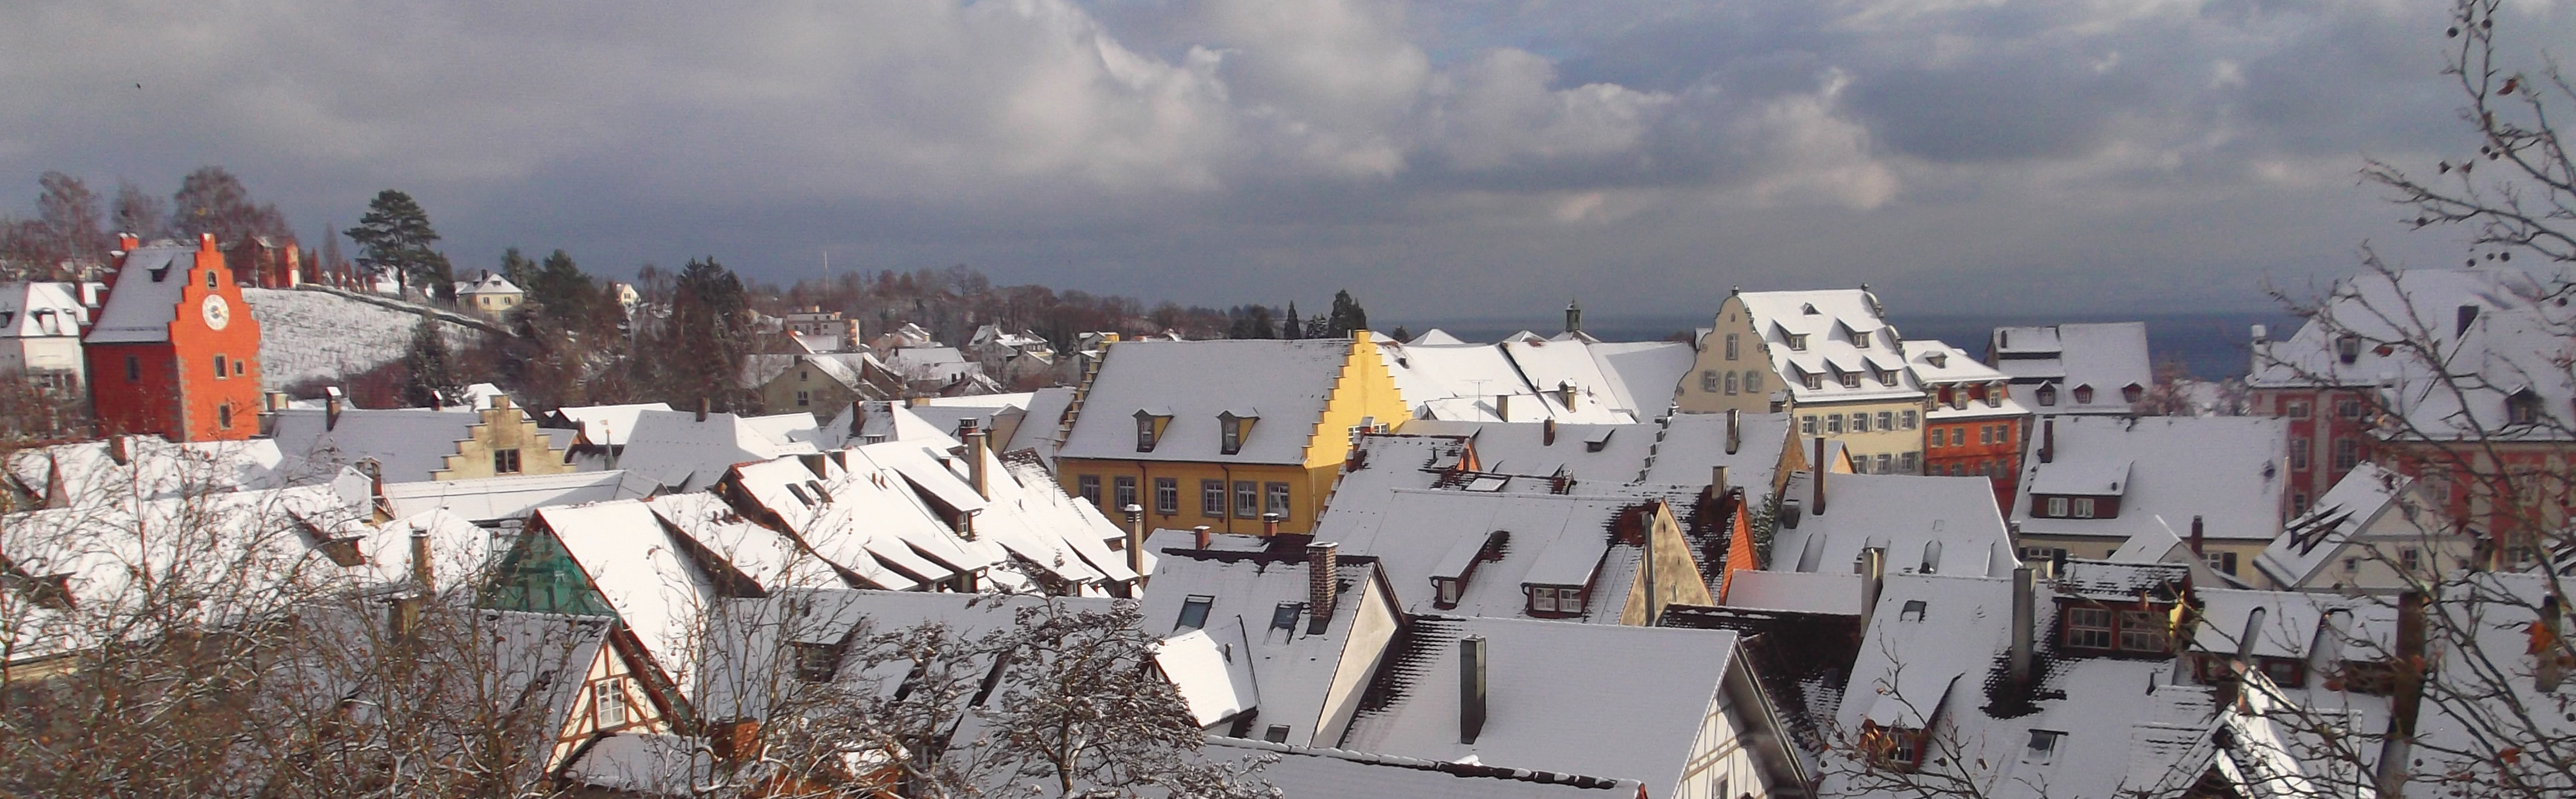 Winter in Meersburg